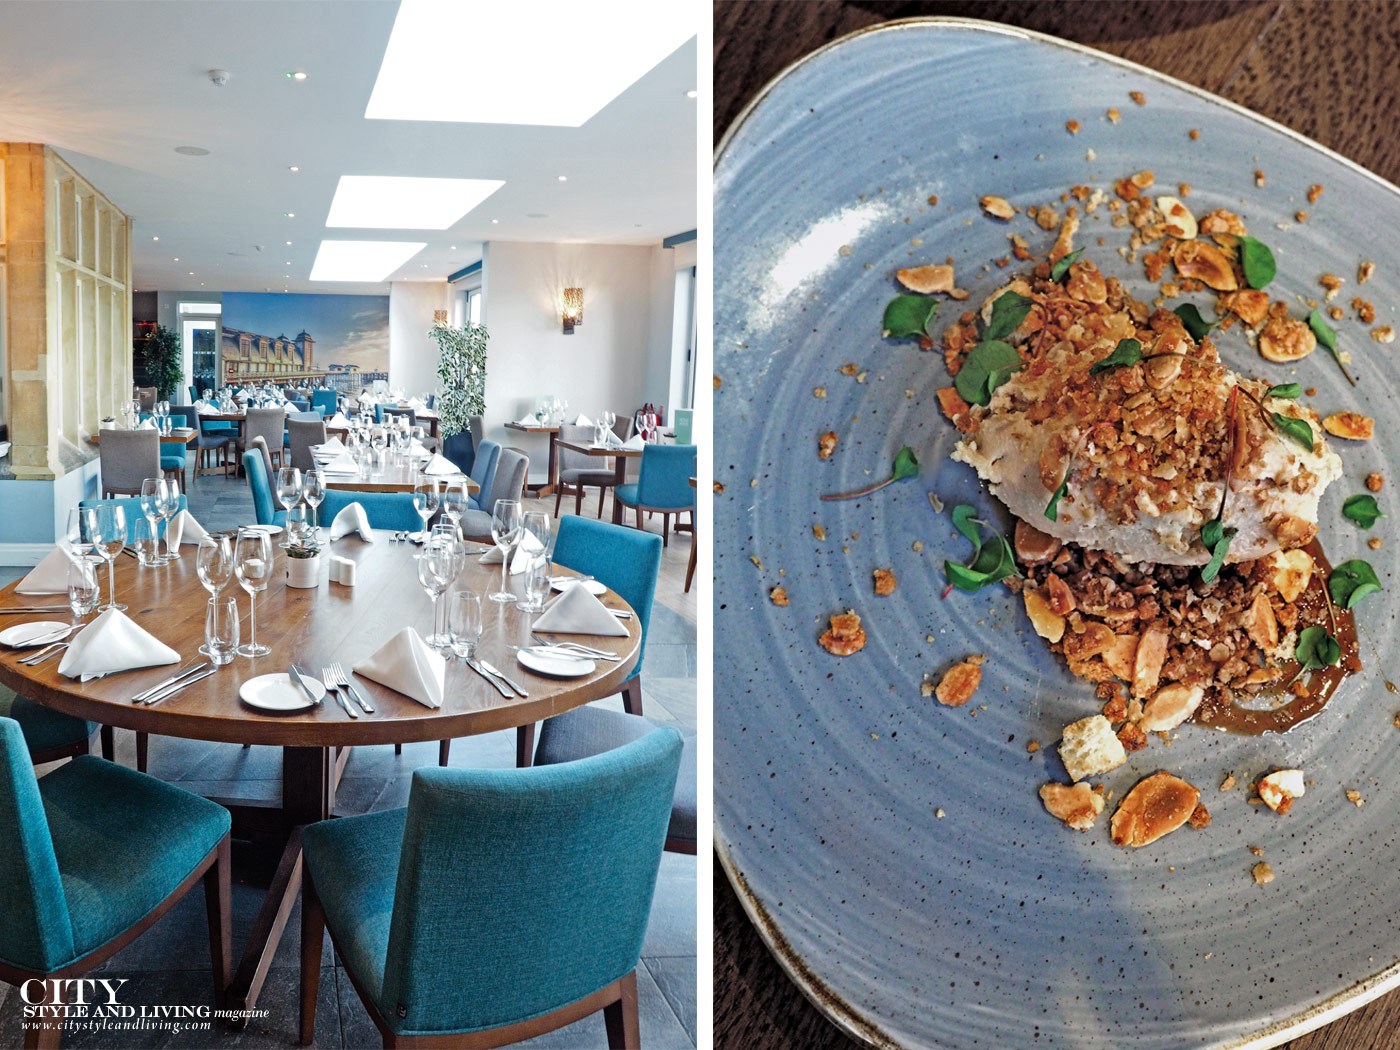 City Style and Living Magazine Winter 2018 Travel Wales Luxury Hotel Holm House Penarth dining room and chicken parfait